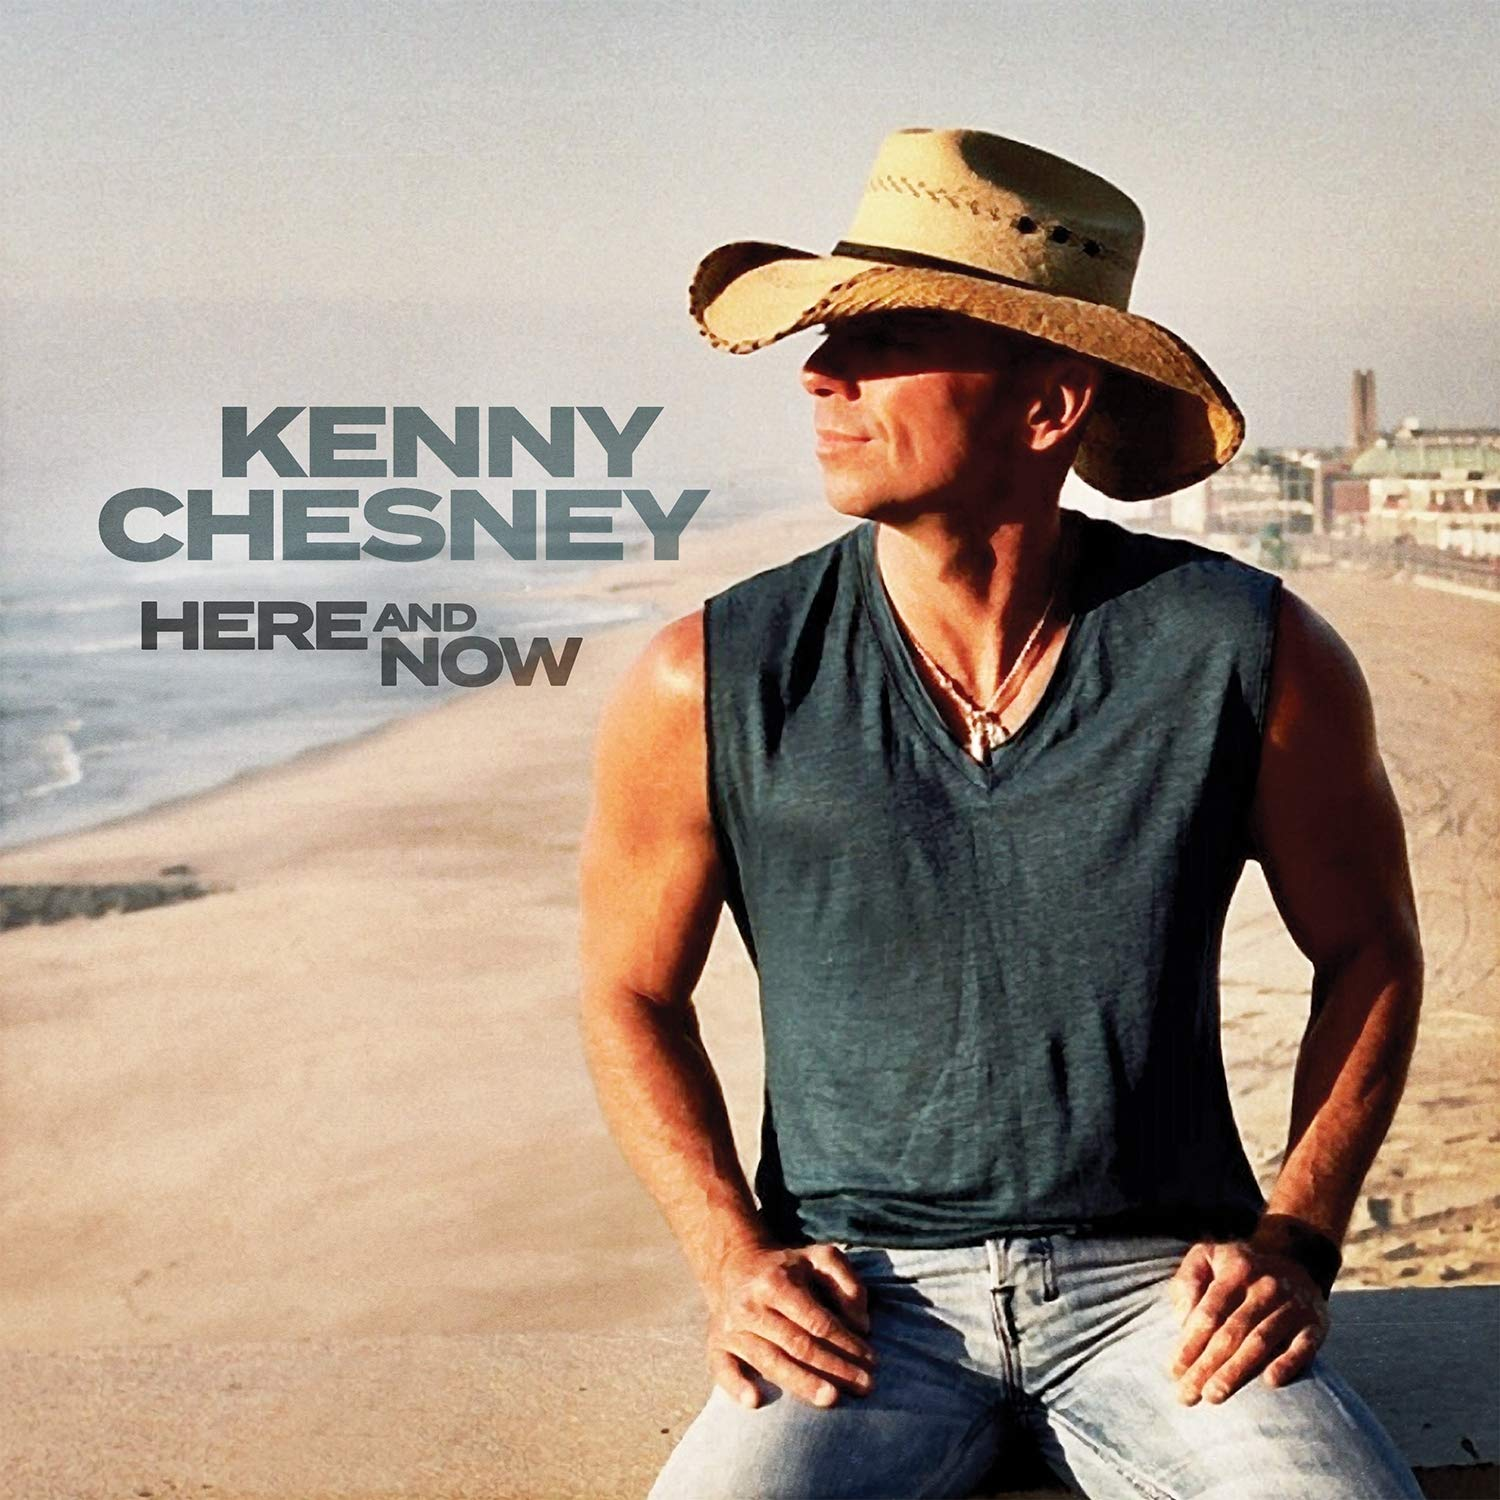 Kenny Chesney - Here And Now - Amazon.com Music